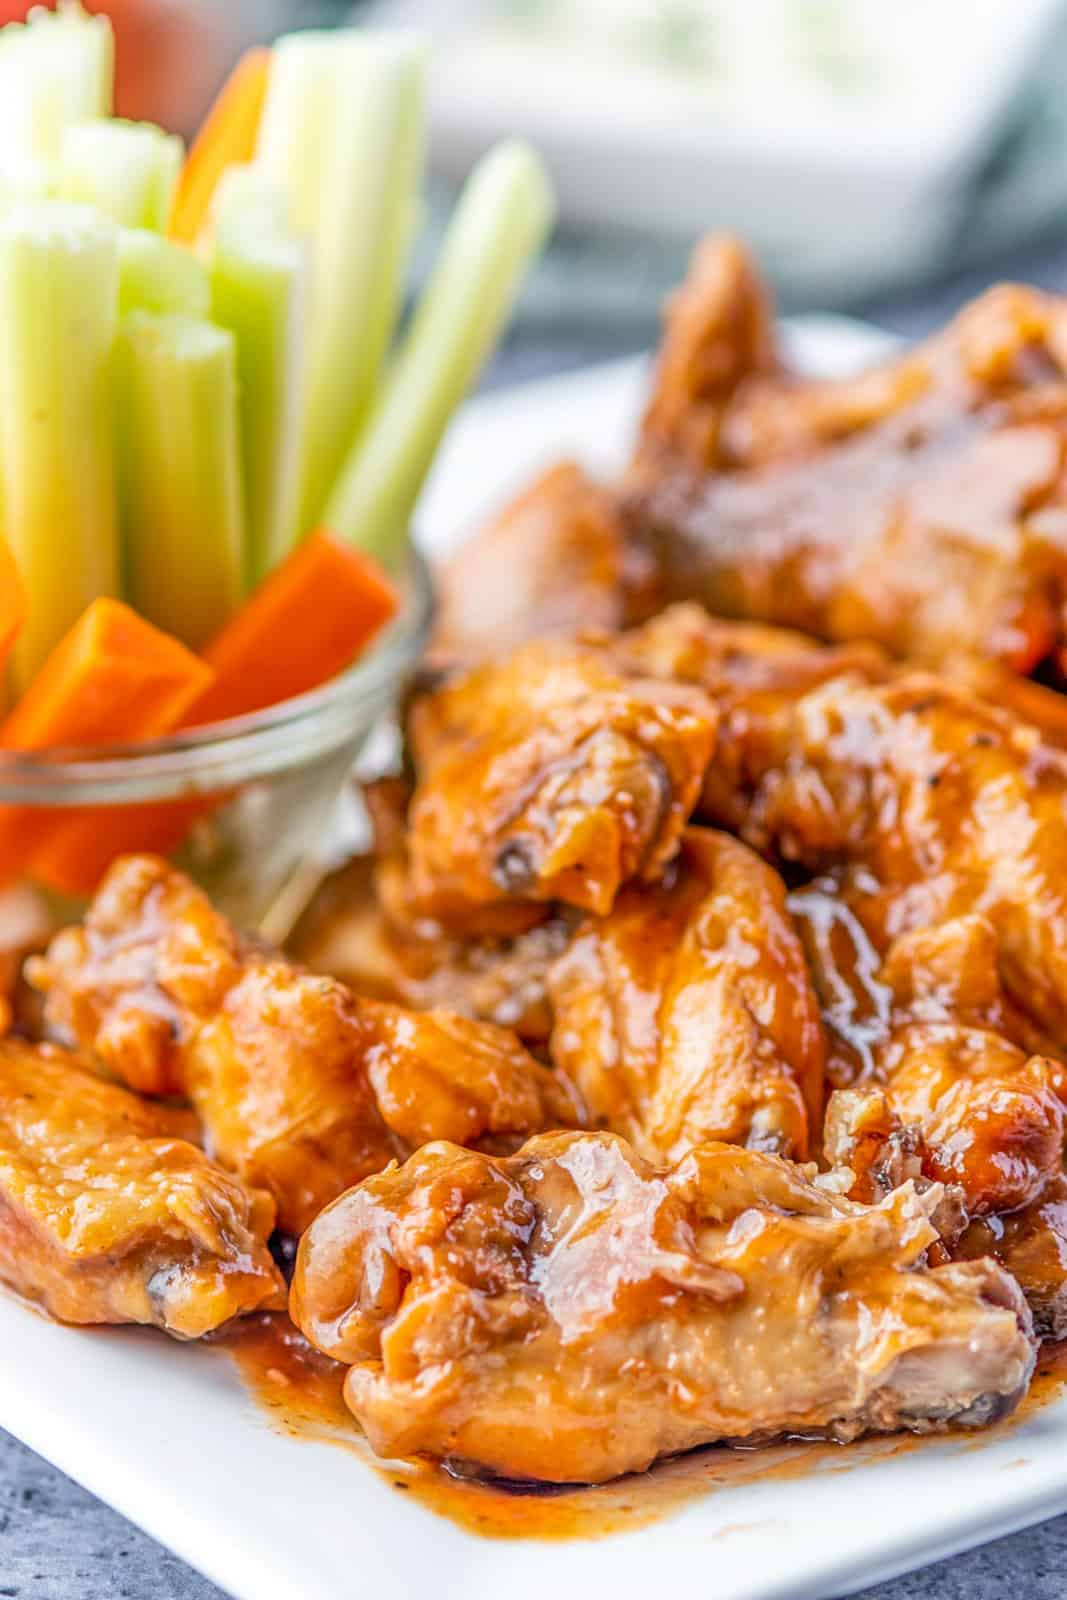 Close up of Slow Cooker Chicken wings on white plate with celery and carrots in background